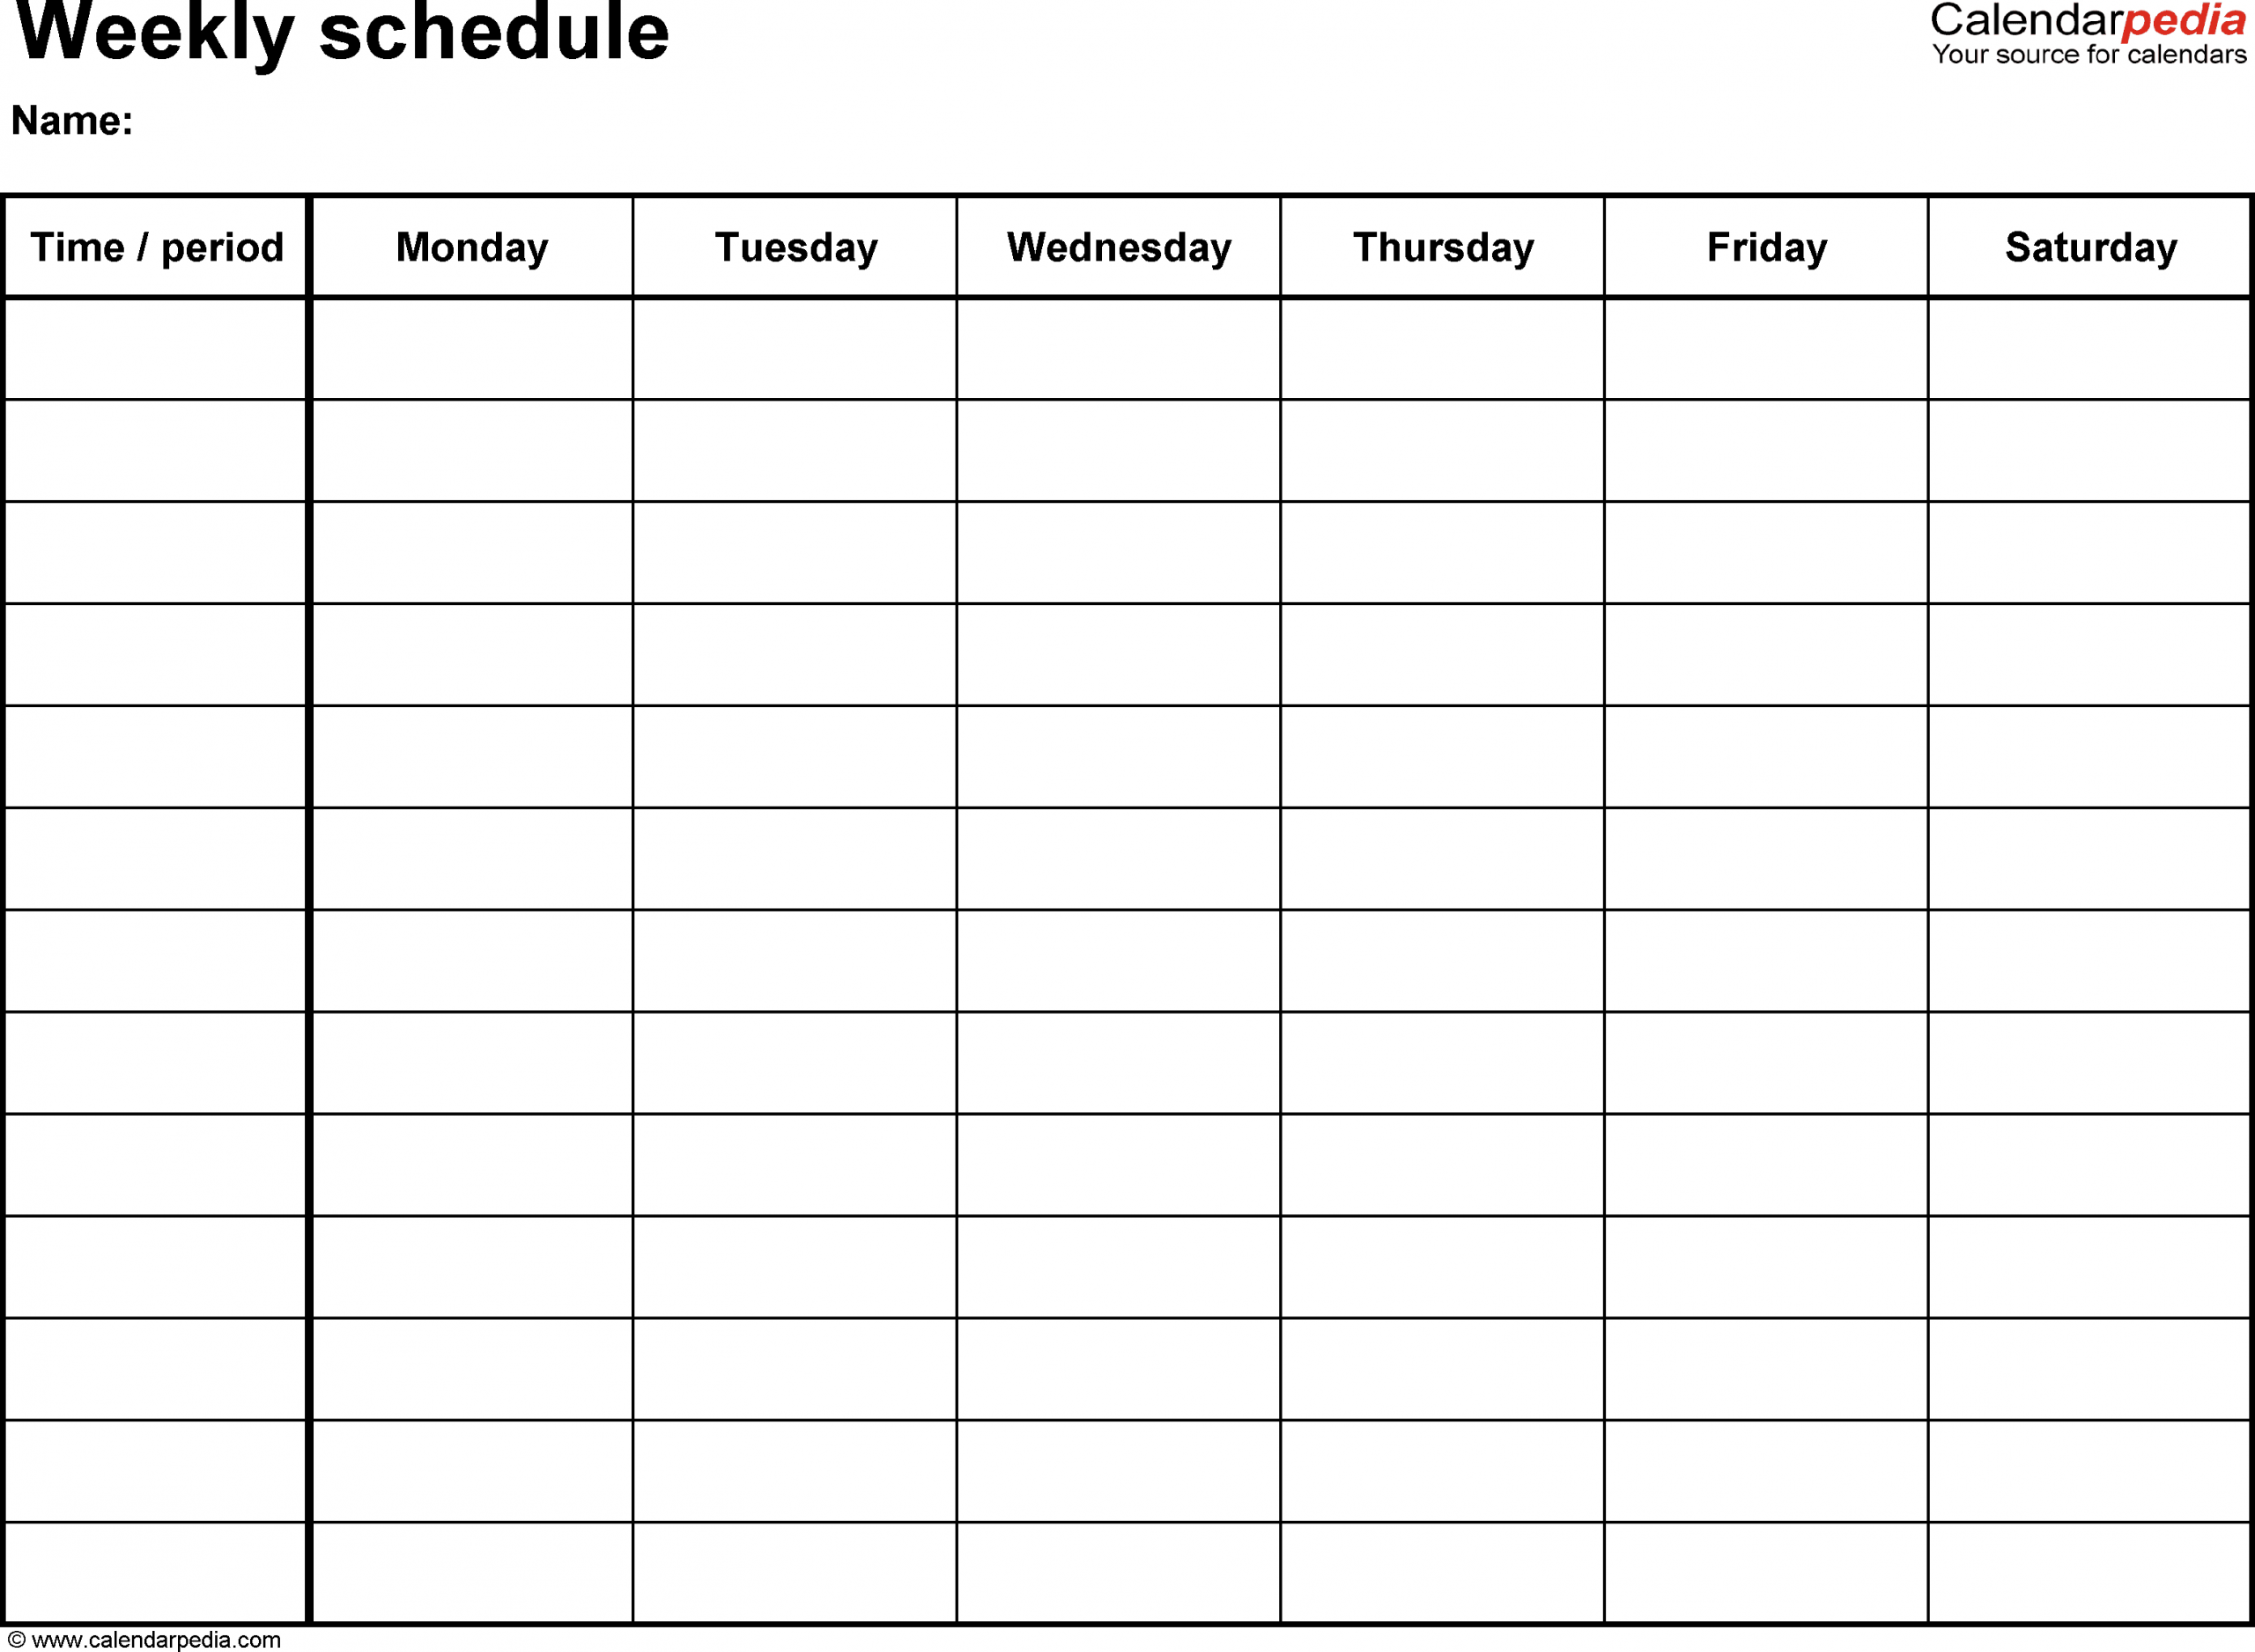 Printable Calendar Sunday Through Saturday | Calendar Free Sunday Through Saturday Scheduling Calender